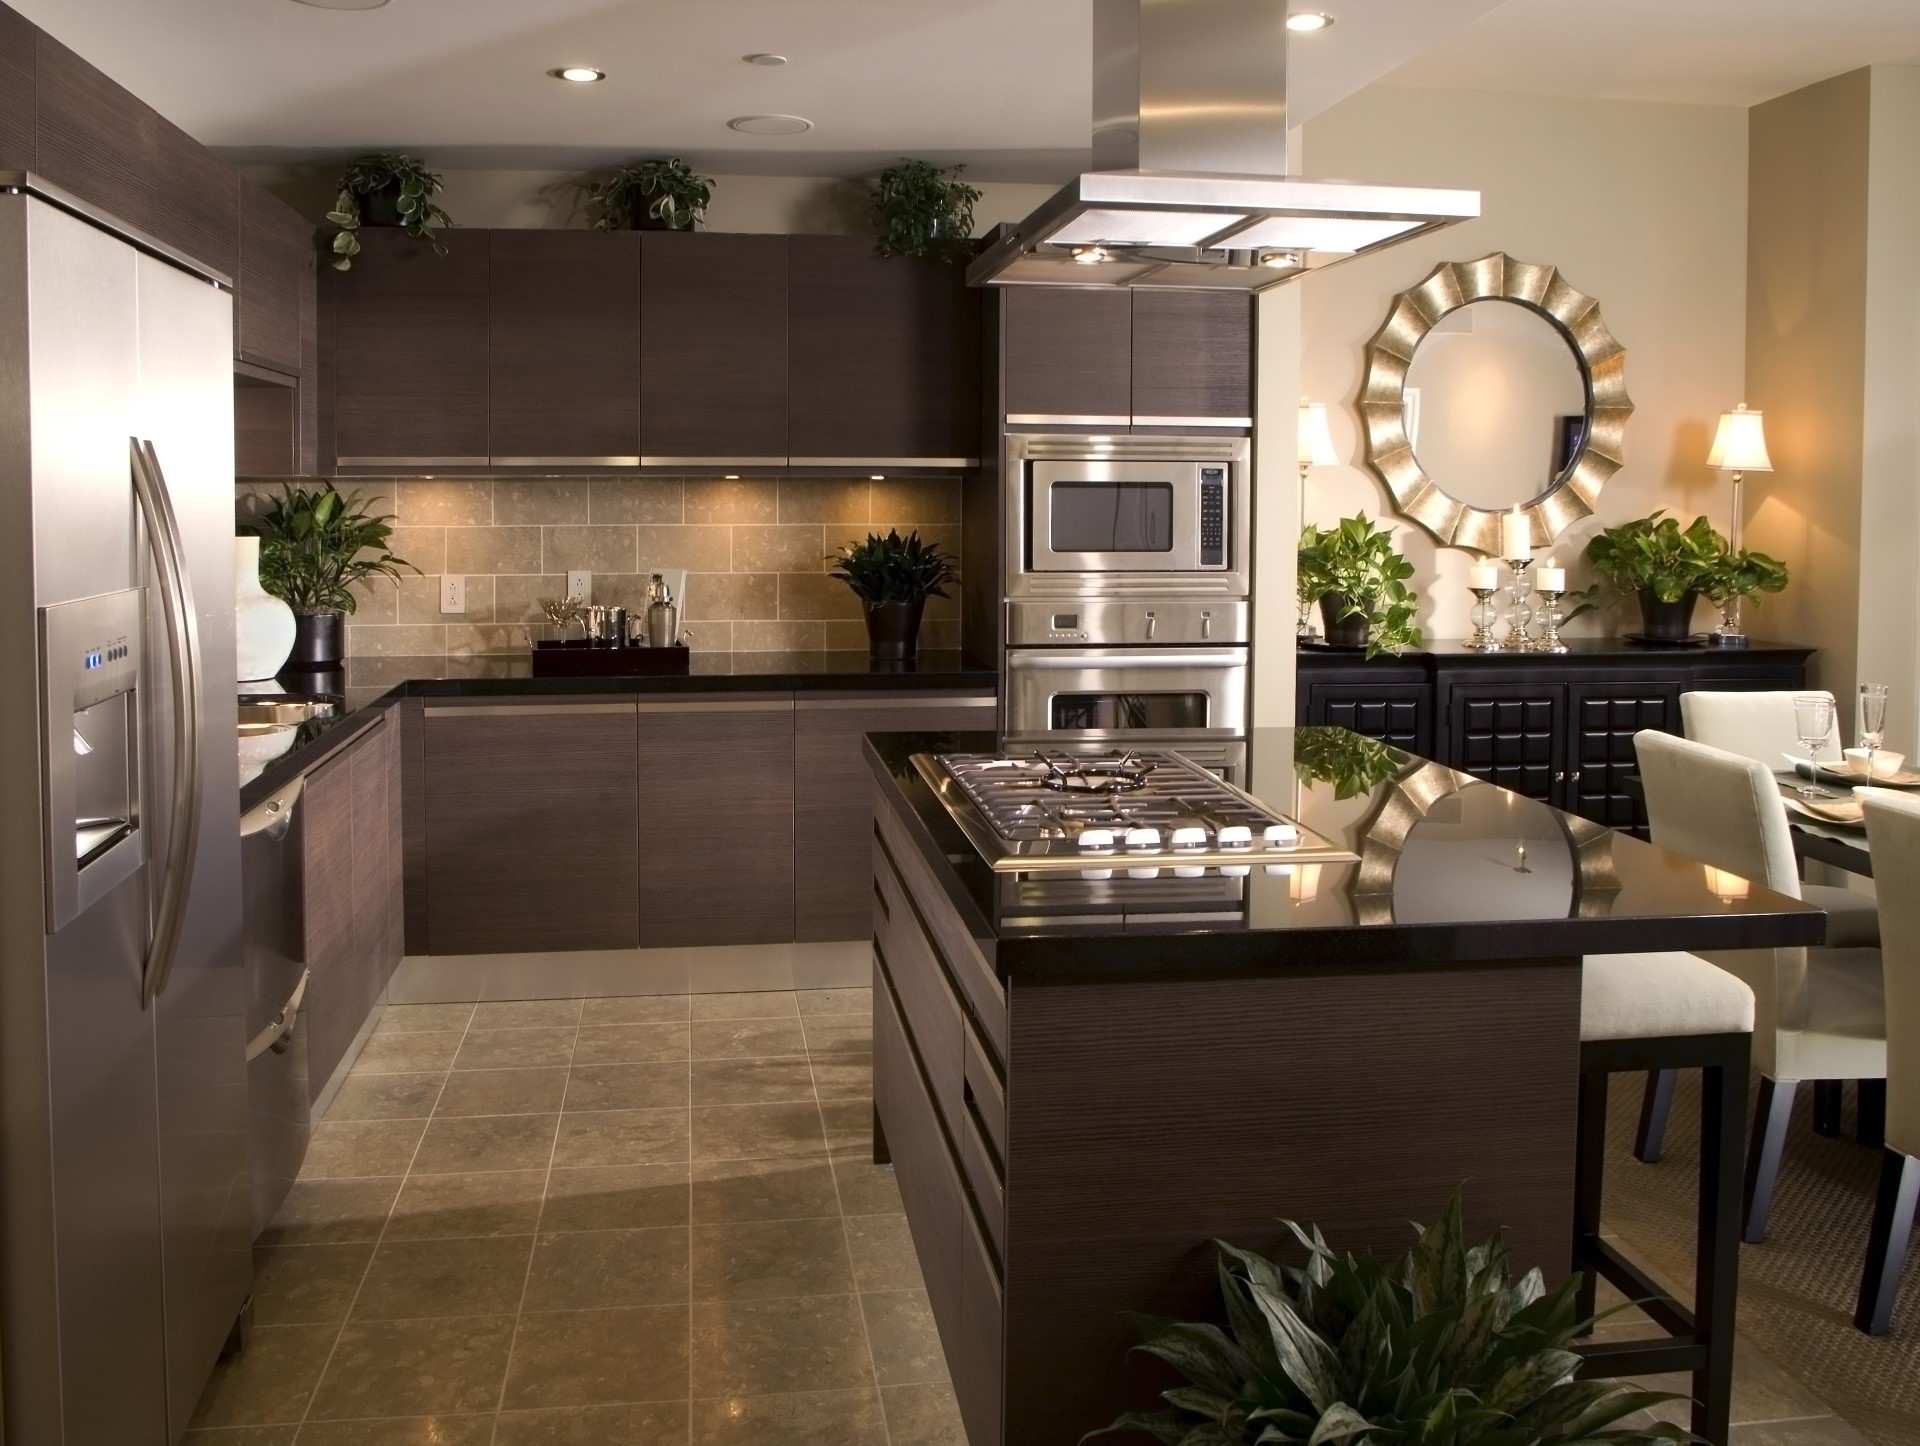 Contemporary styles are getting very popular because they provide a warm feeling. While being very close to modern, they tend to bring in more elements such as steel, stone, and wooden decor.